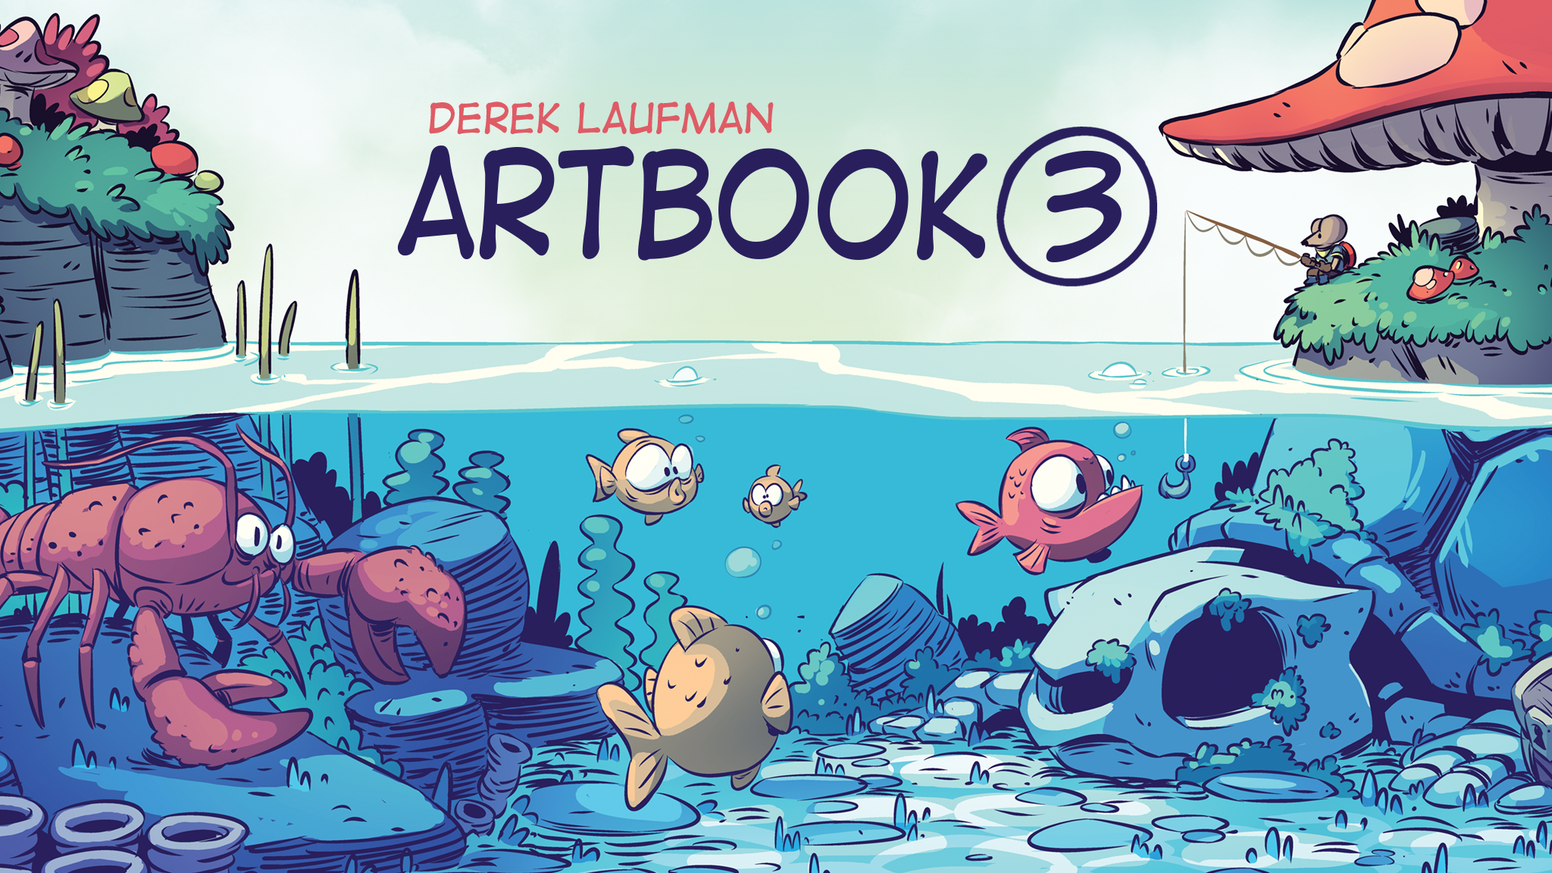 Did you miss out on the Kickstarter? Don't worry! The book is currently available for Limited Pre-Order at www.dereklaufman.com Click the link below!